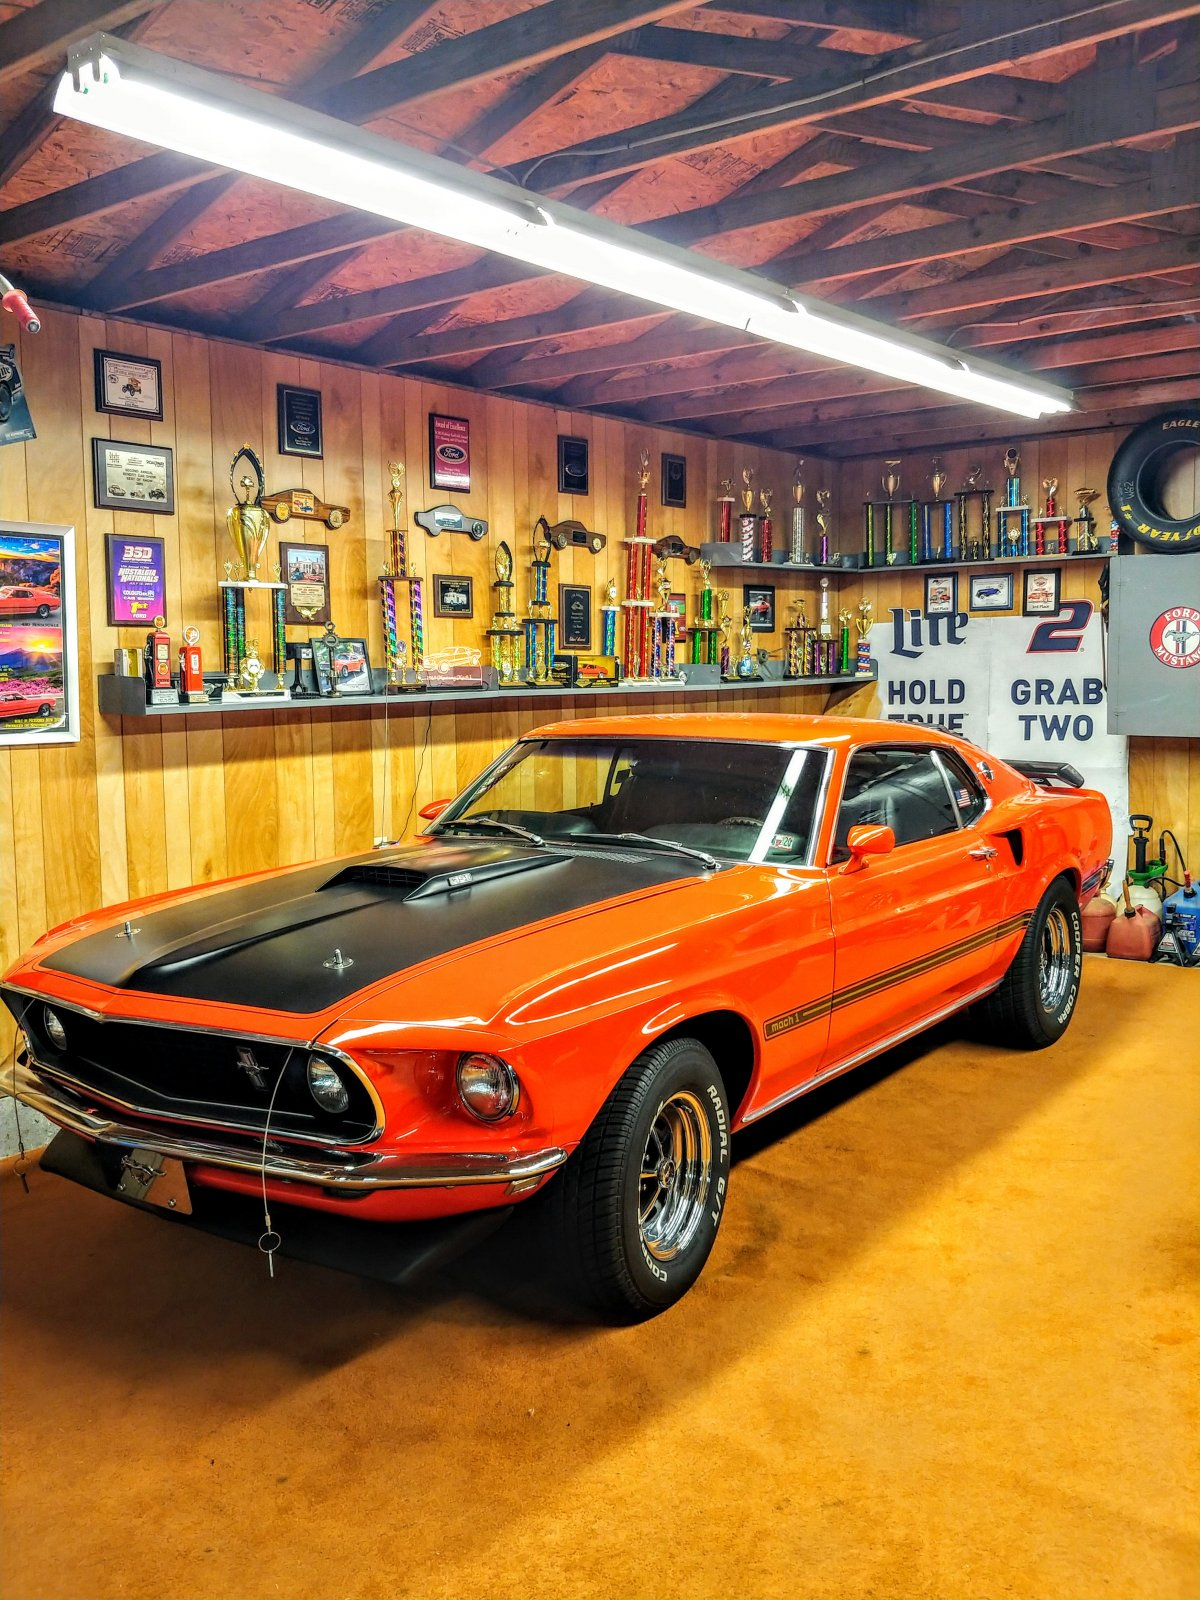 1969 Ford Mustang Mach 1 With a 480 HP 8.jpg